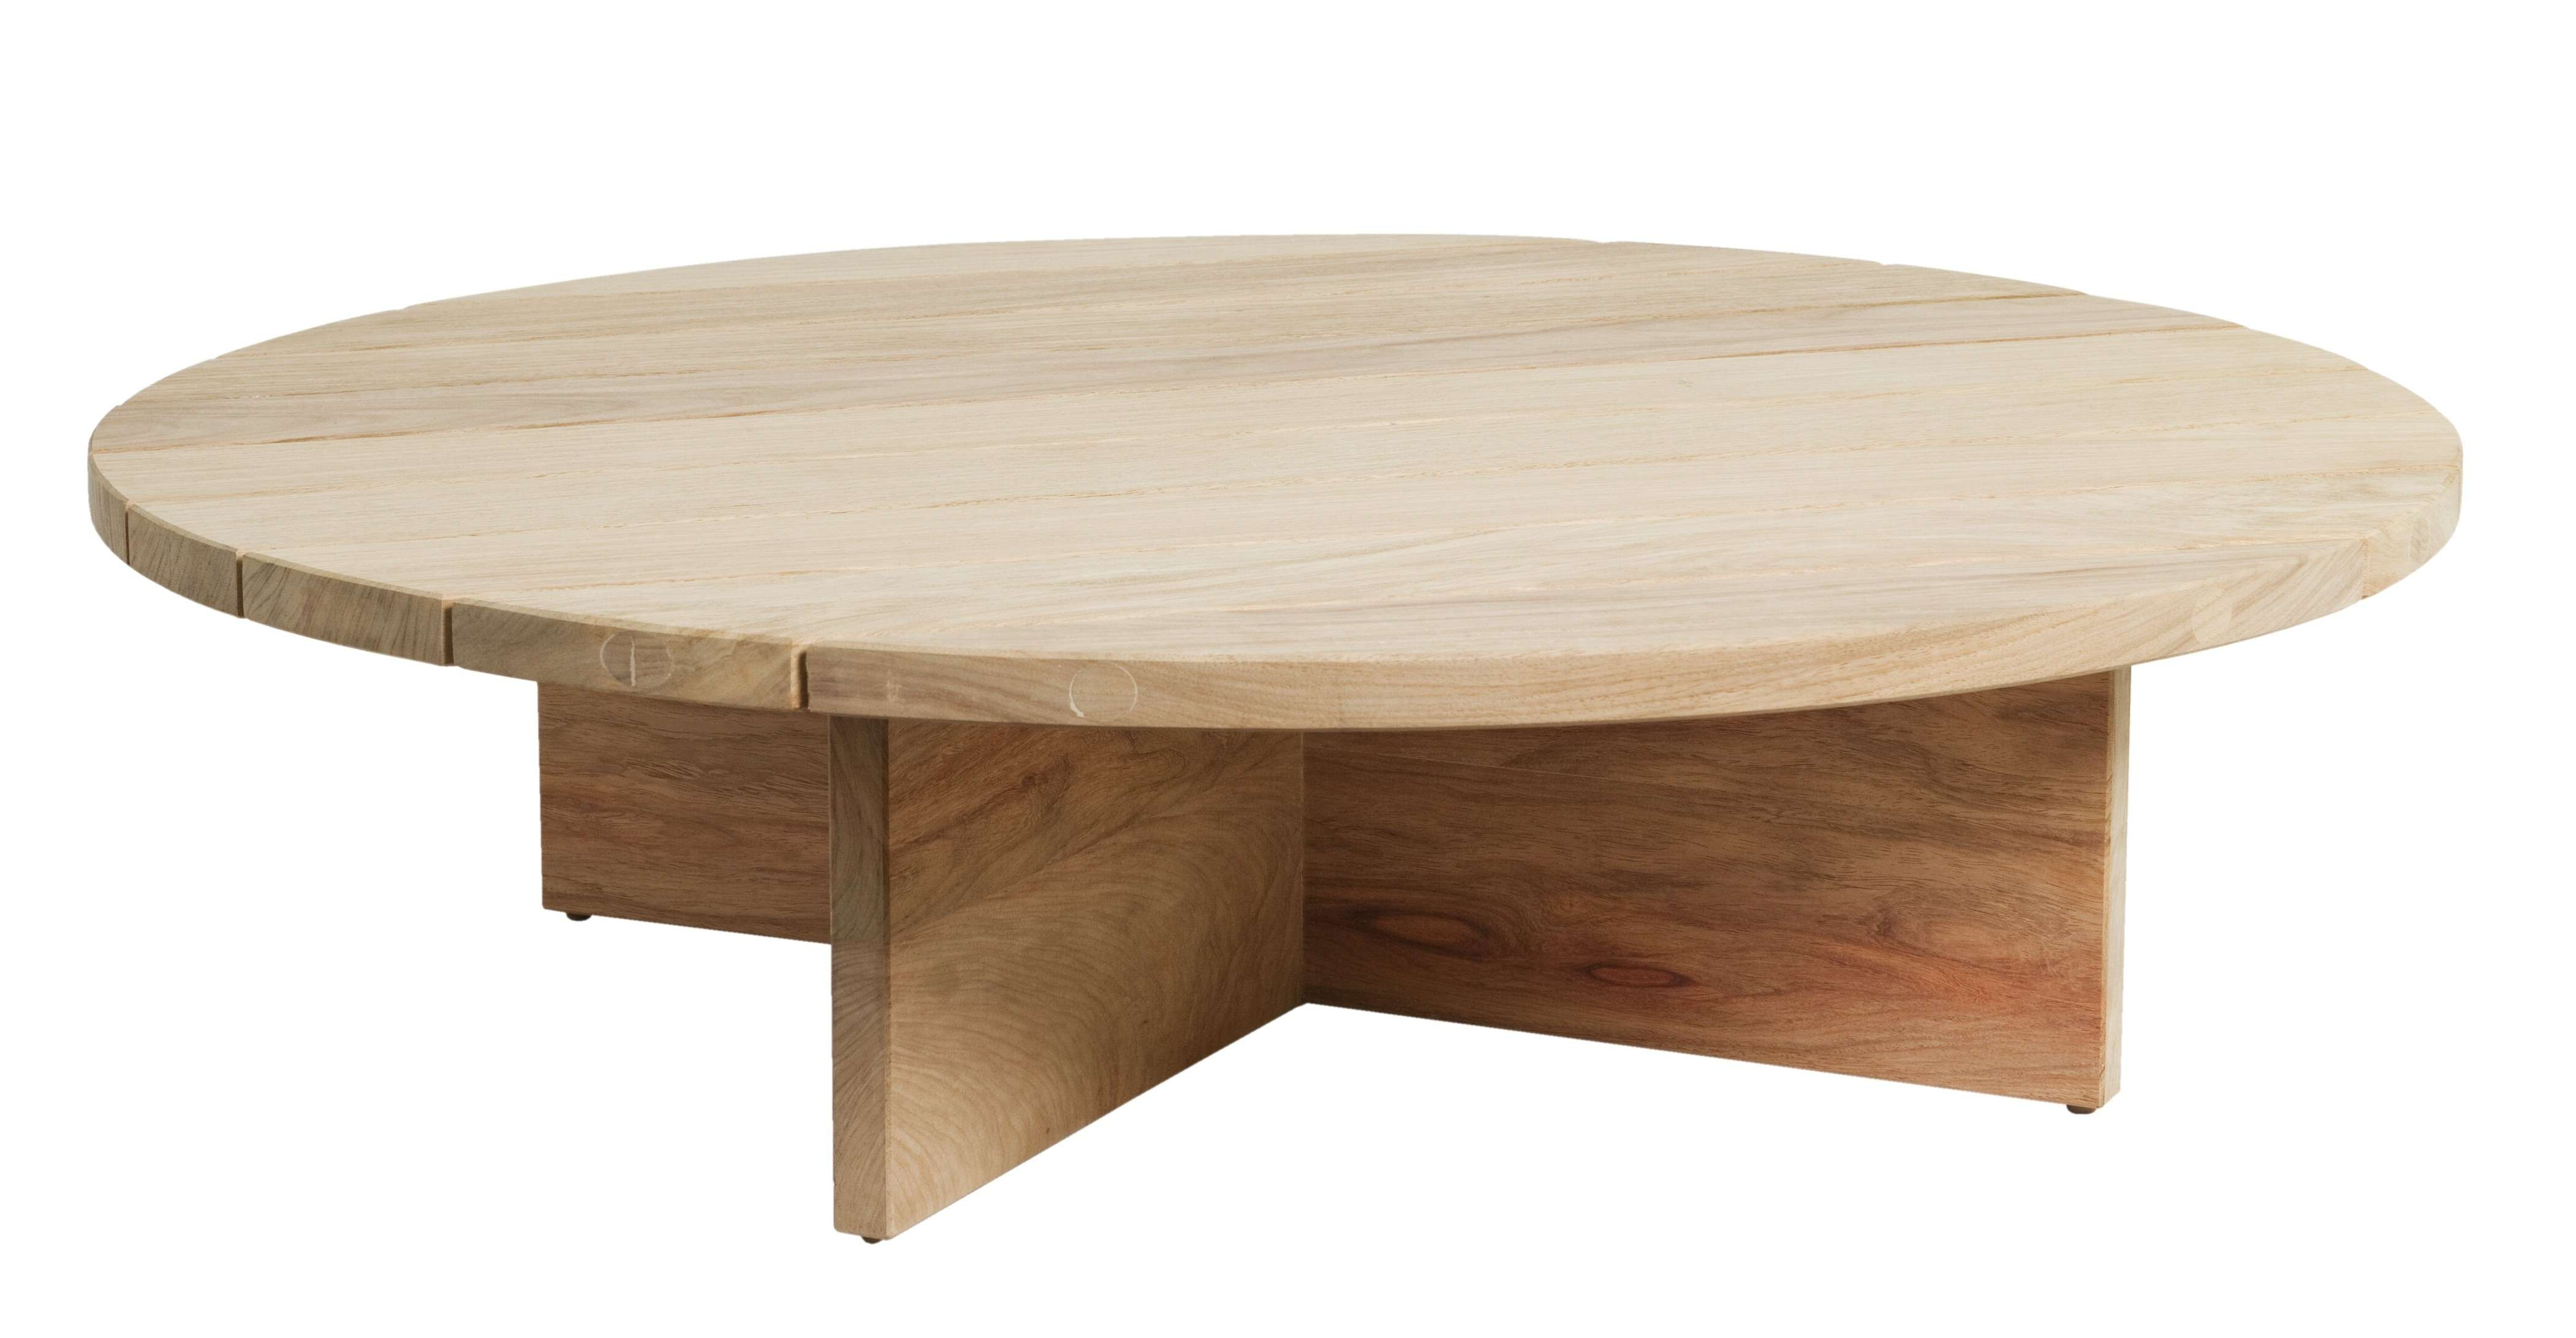 Most Recent Chunky Coffee Tables Intended For Round Wood Coffee Table With Storage Chunky Coffee Table Round (View 13 of 20)